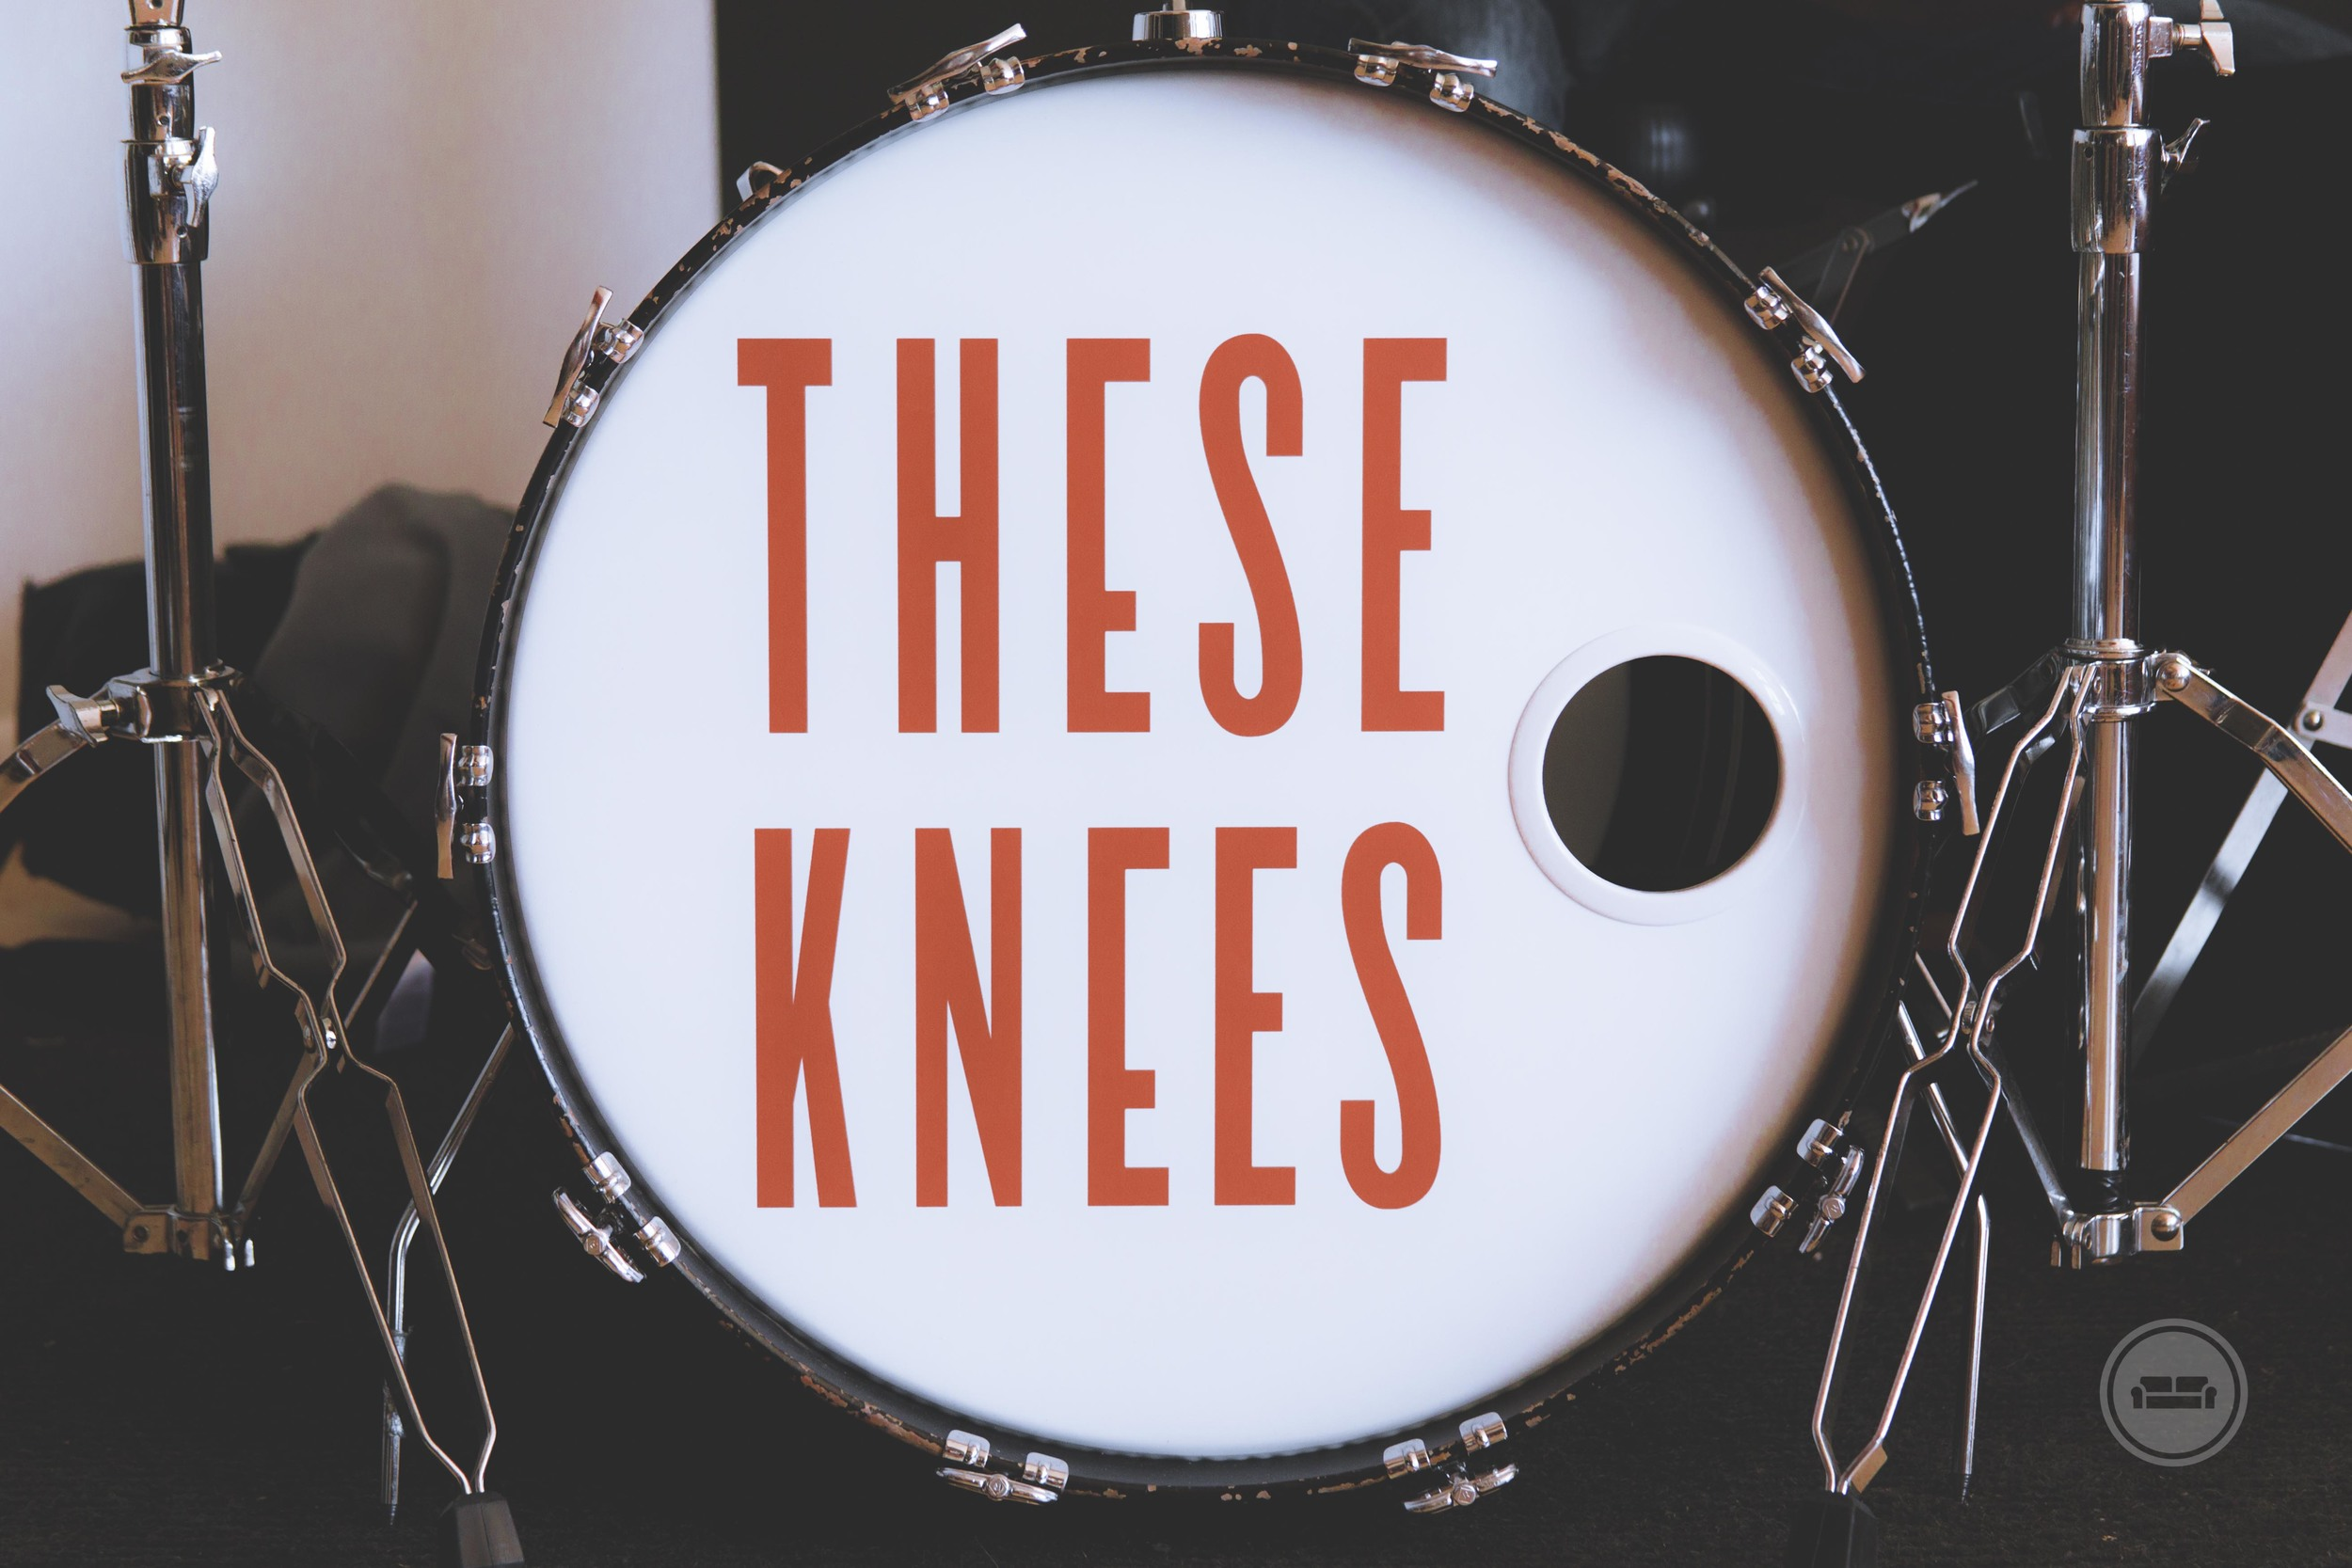 These Knees 1.jpg